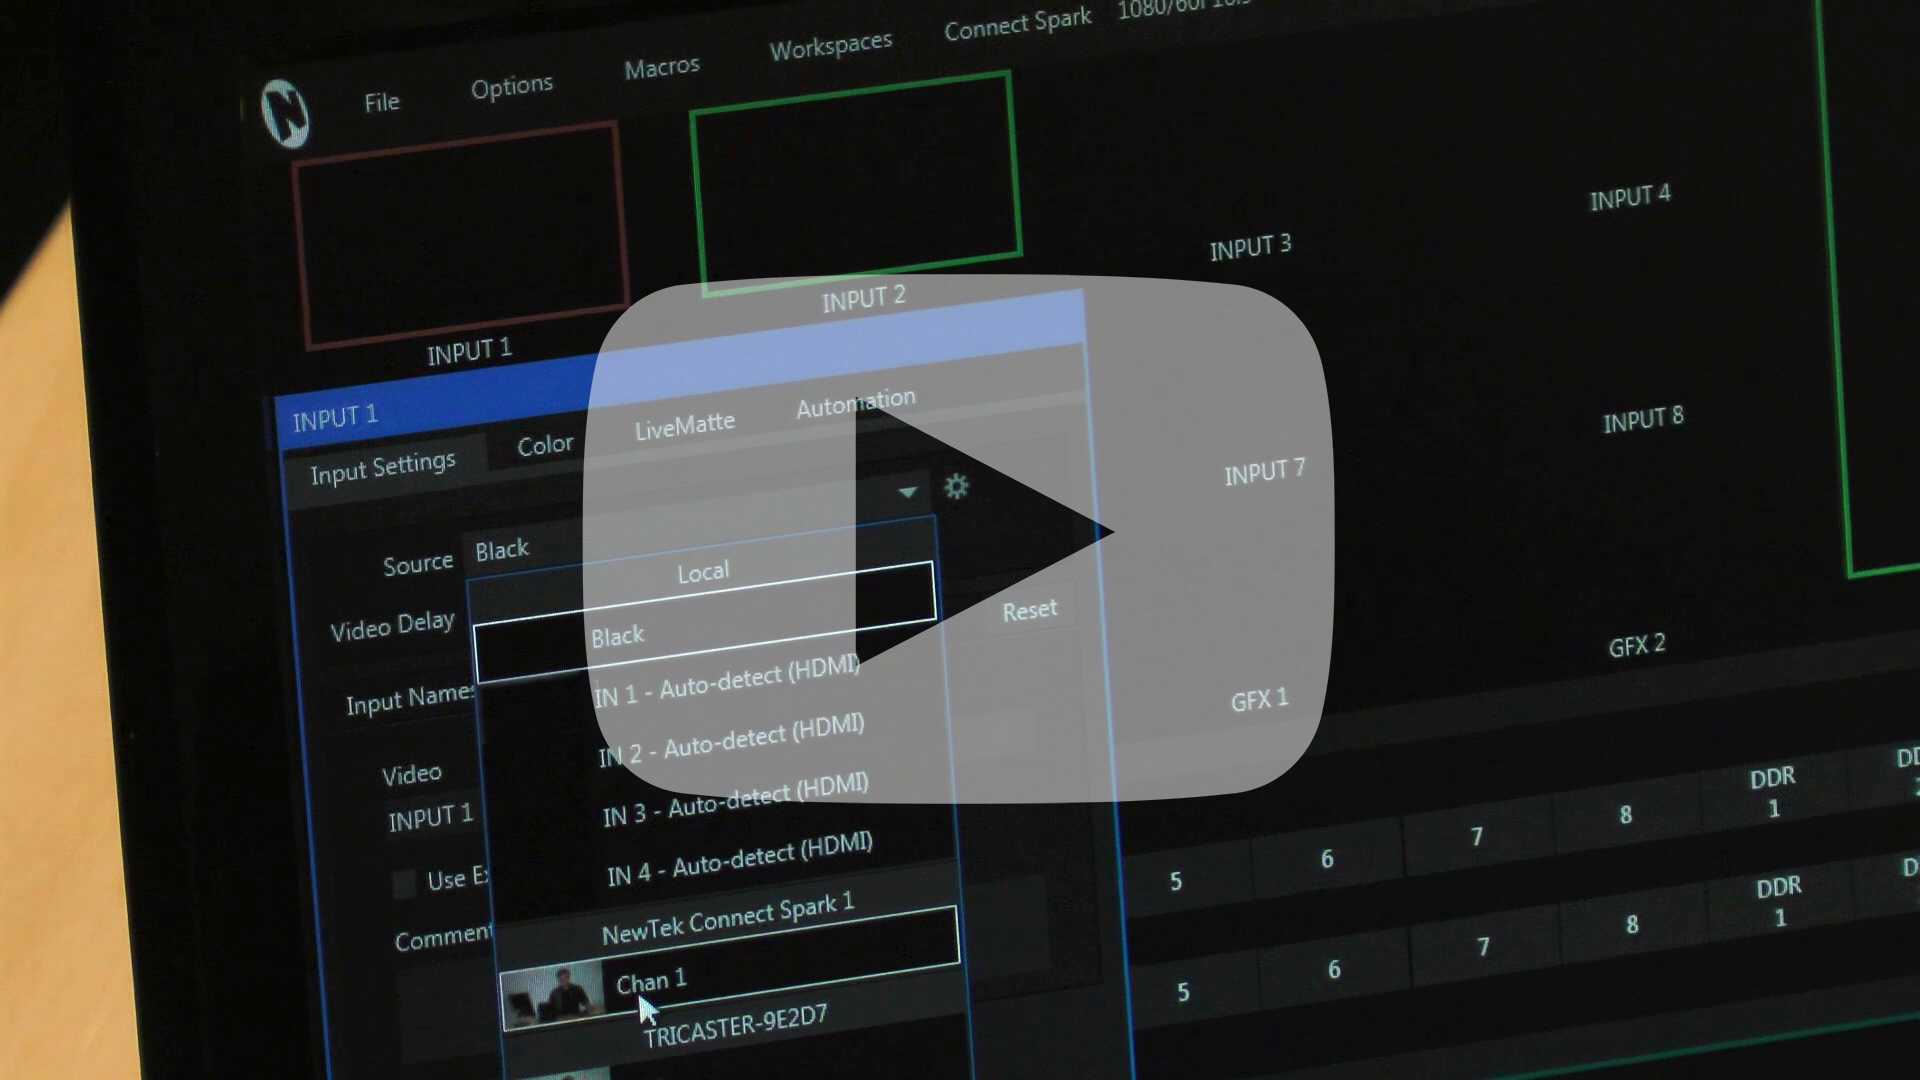 Adding Video Inputs to Your Production System with NewTek Connect Spark